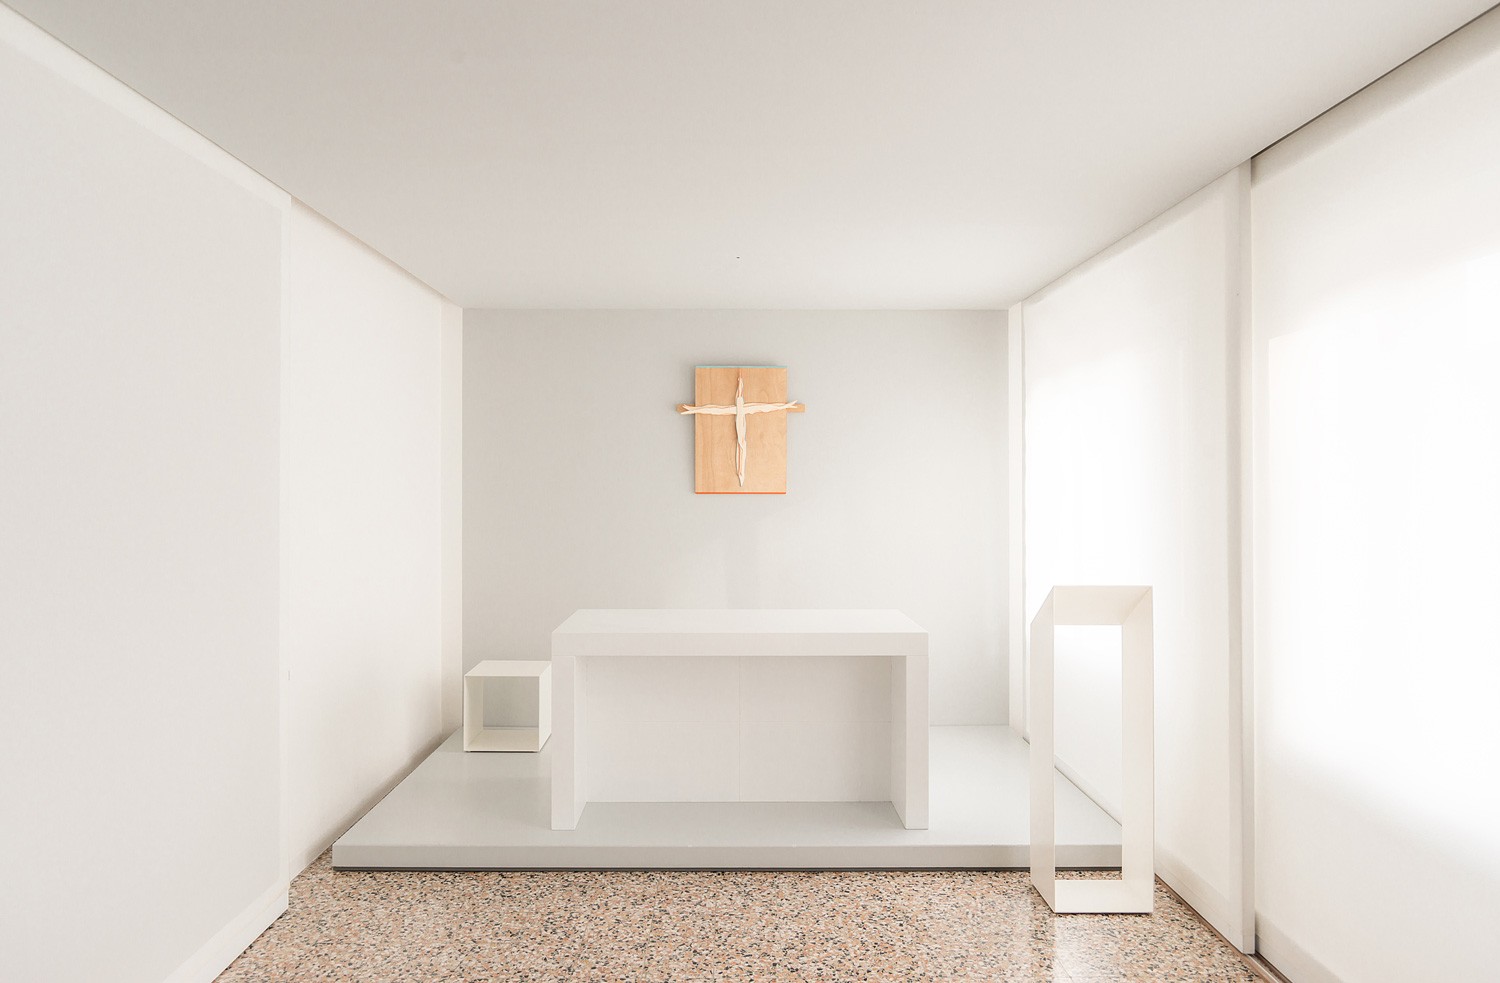 San Arialdo by Duearchitetti | Yellowtrace